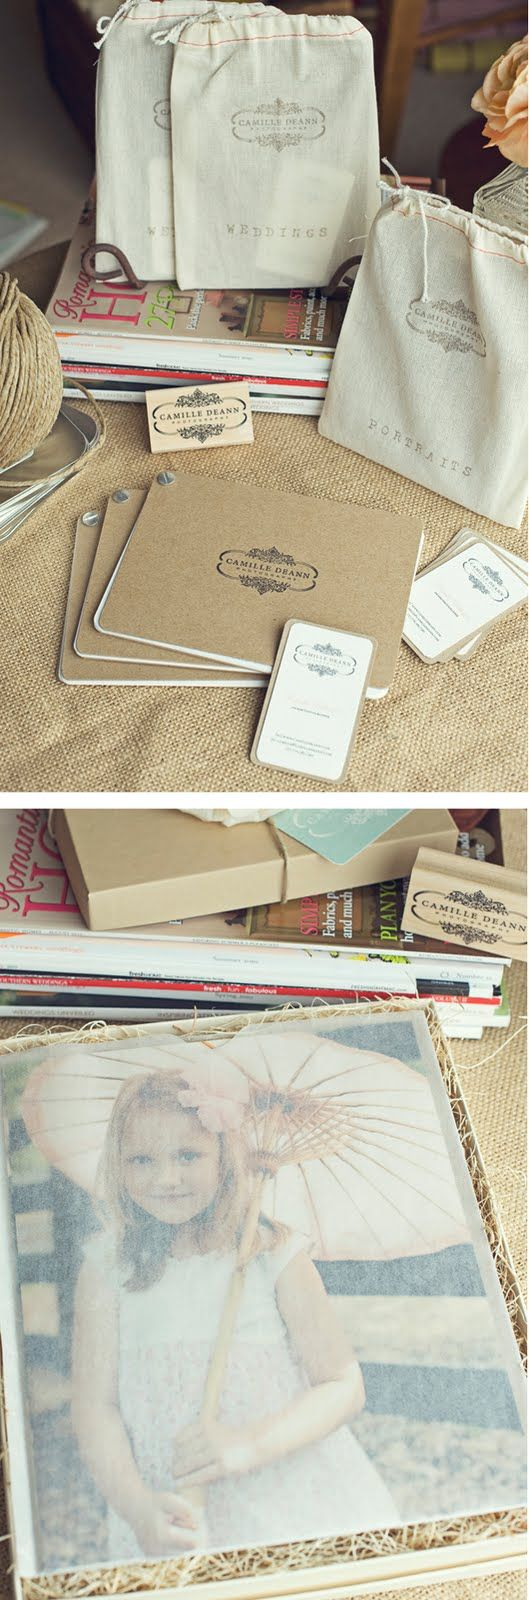 Love this packaging!  How simple to diy, too.